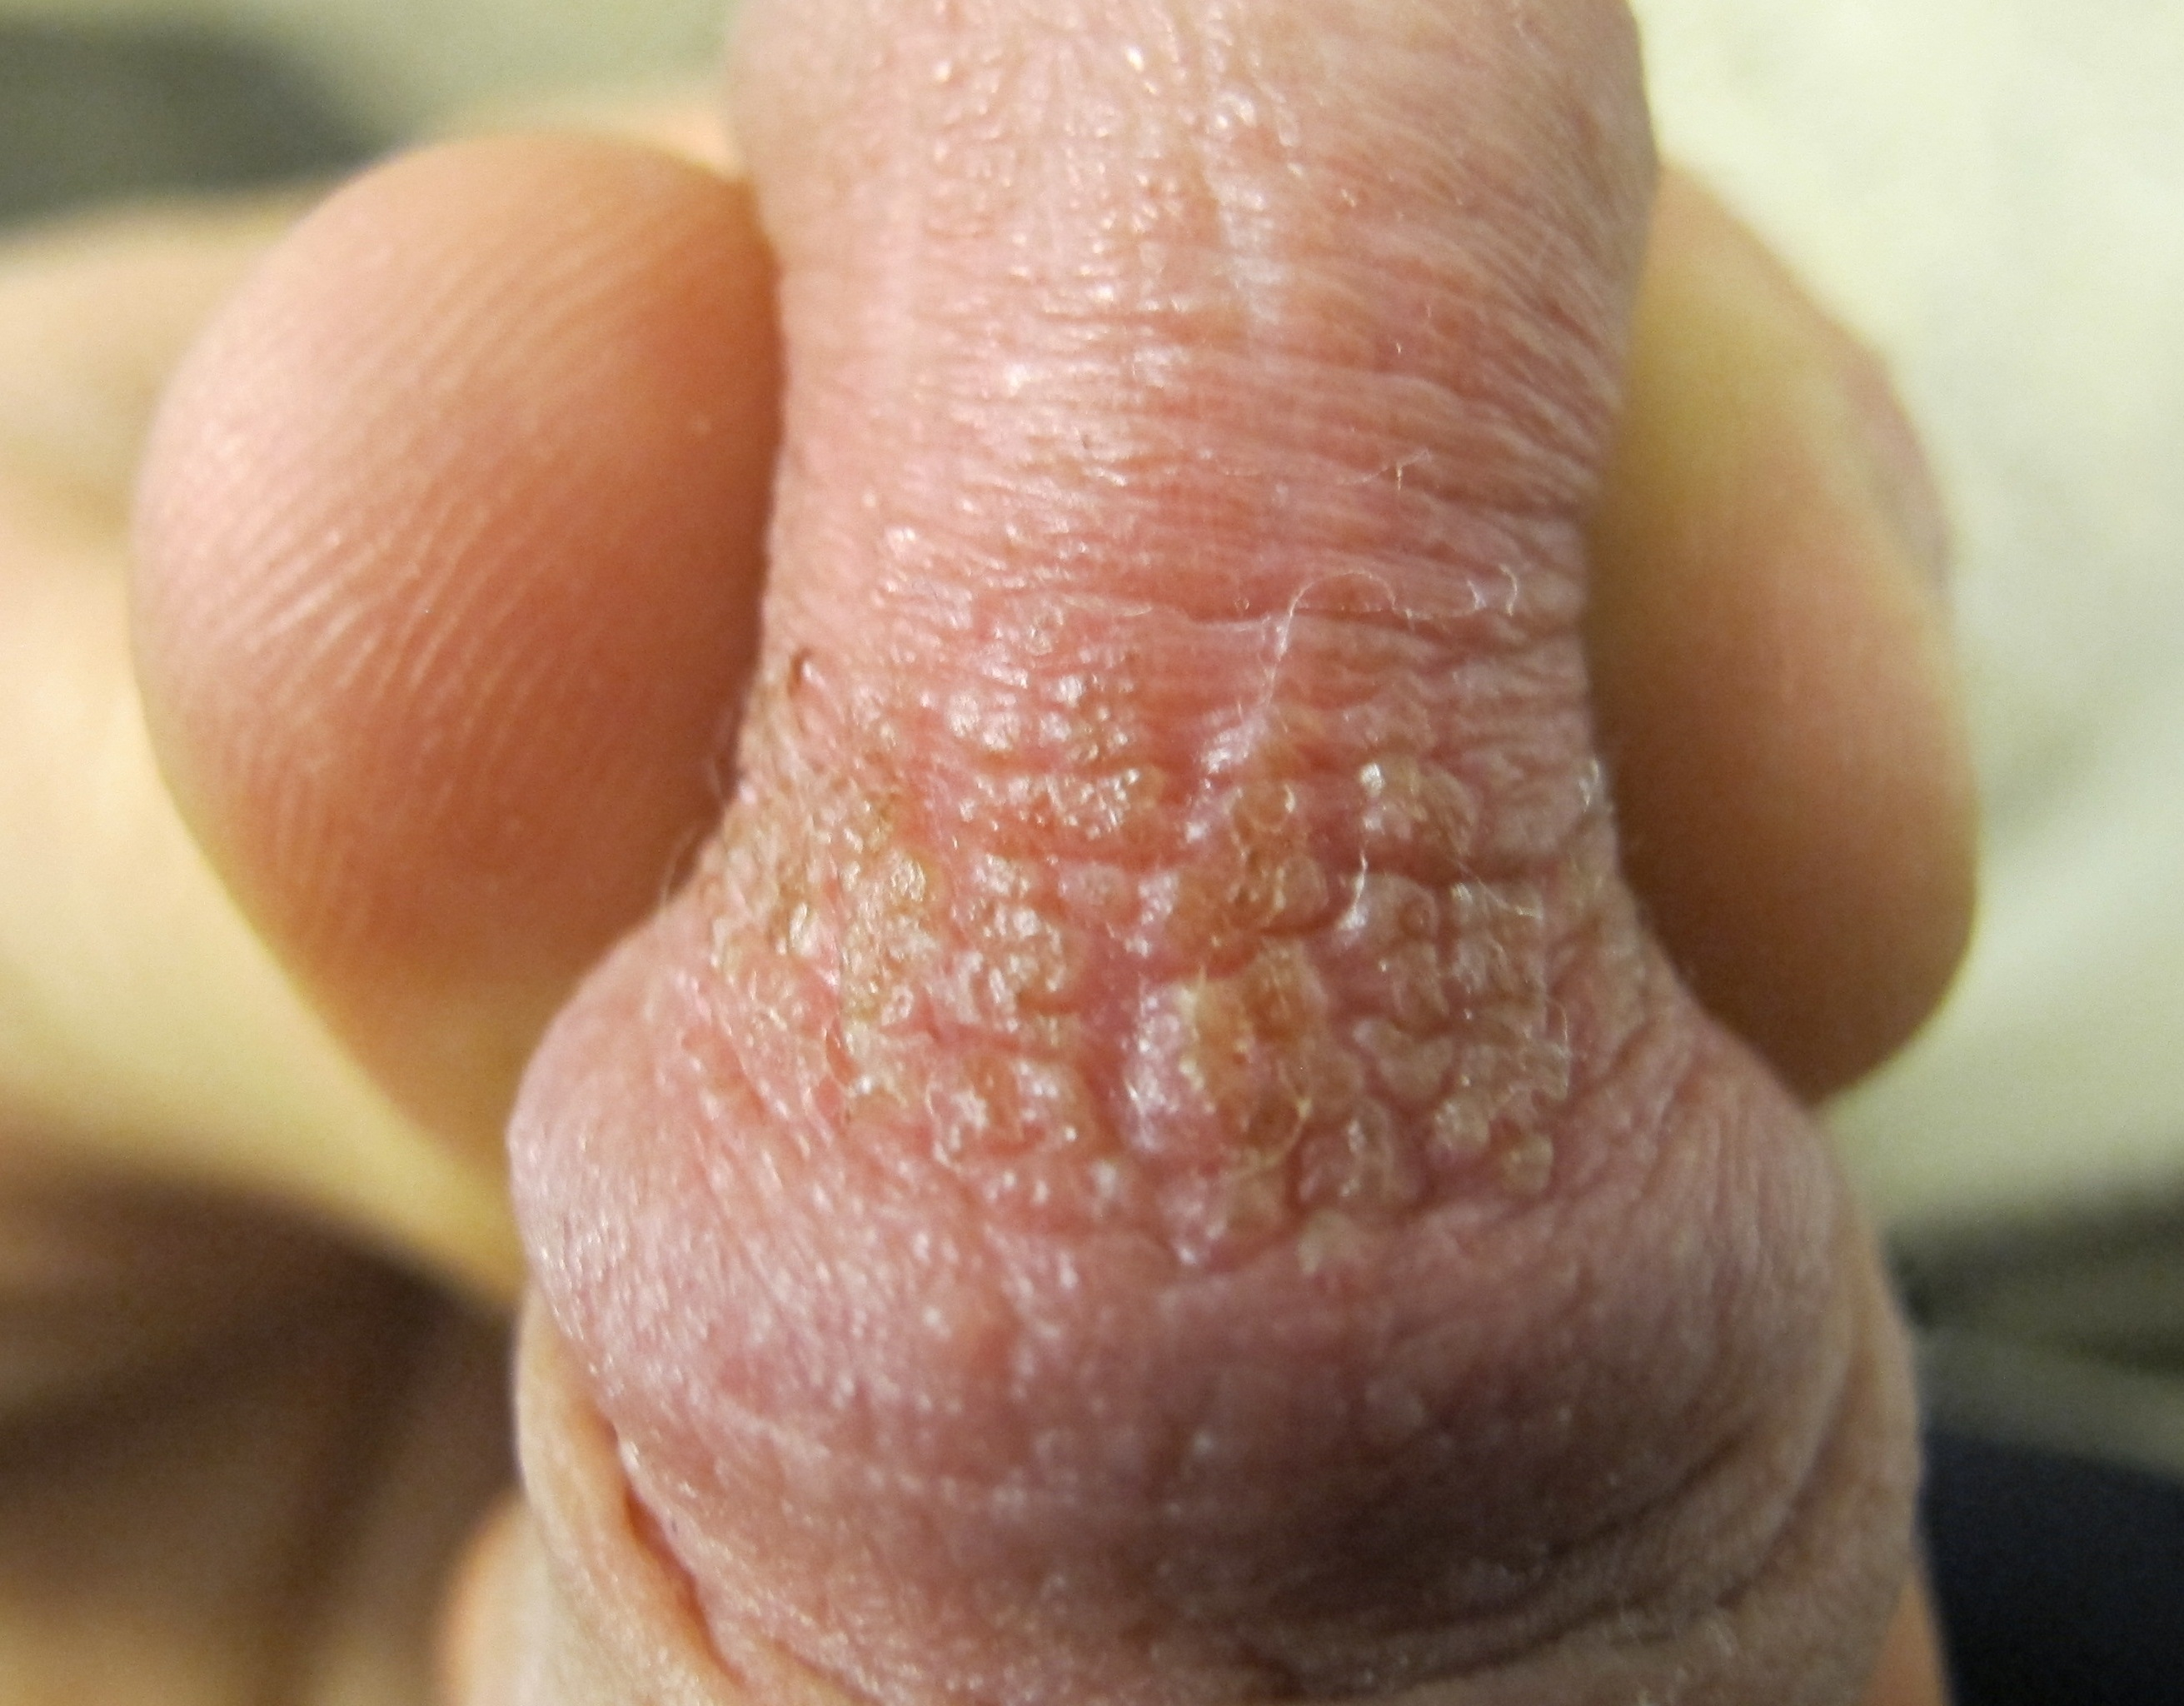 itching penis after masturbation